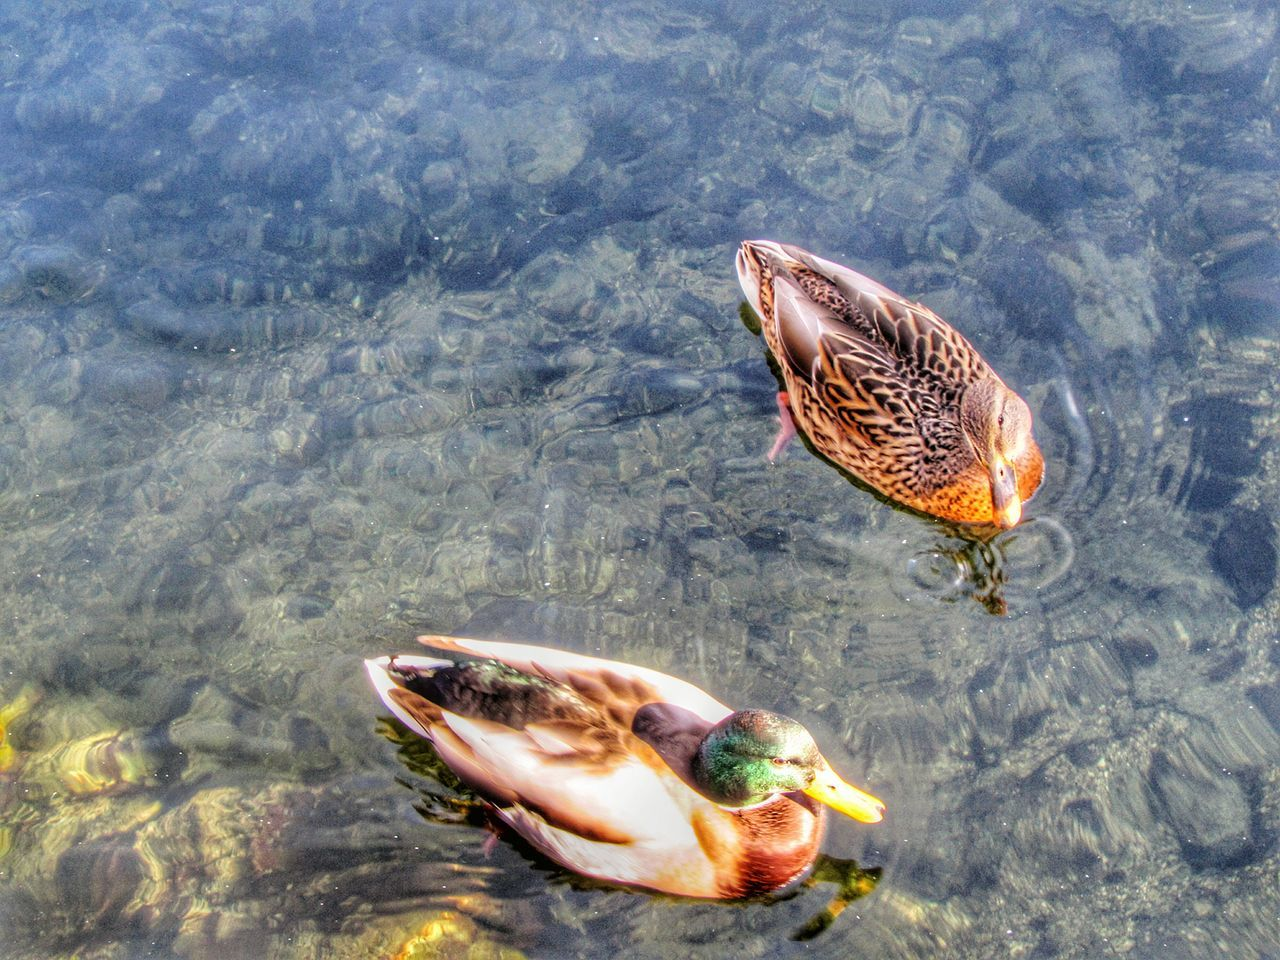 animal themes, animals in the wild, high angle view, waterfront, one animal, no people, water, nature, day, animal wildlife, outdoors, bird, lake, swimming, beauty in nature, close-up